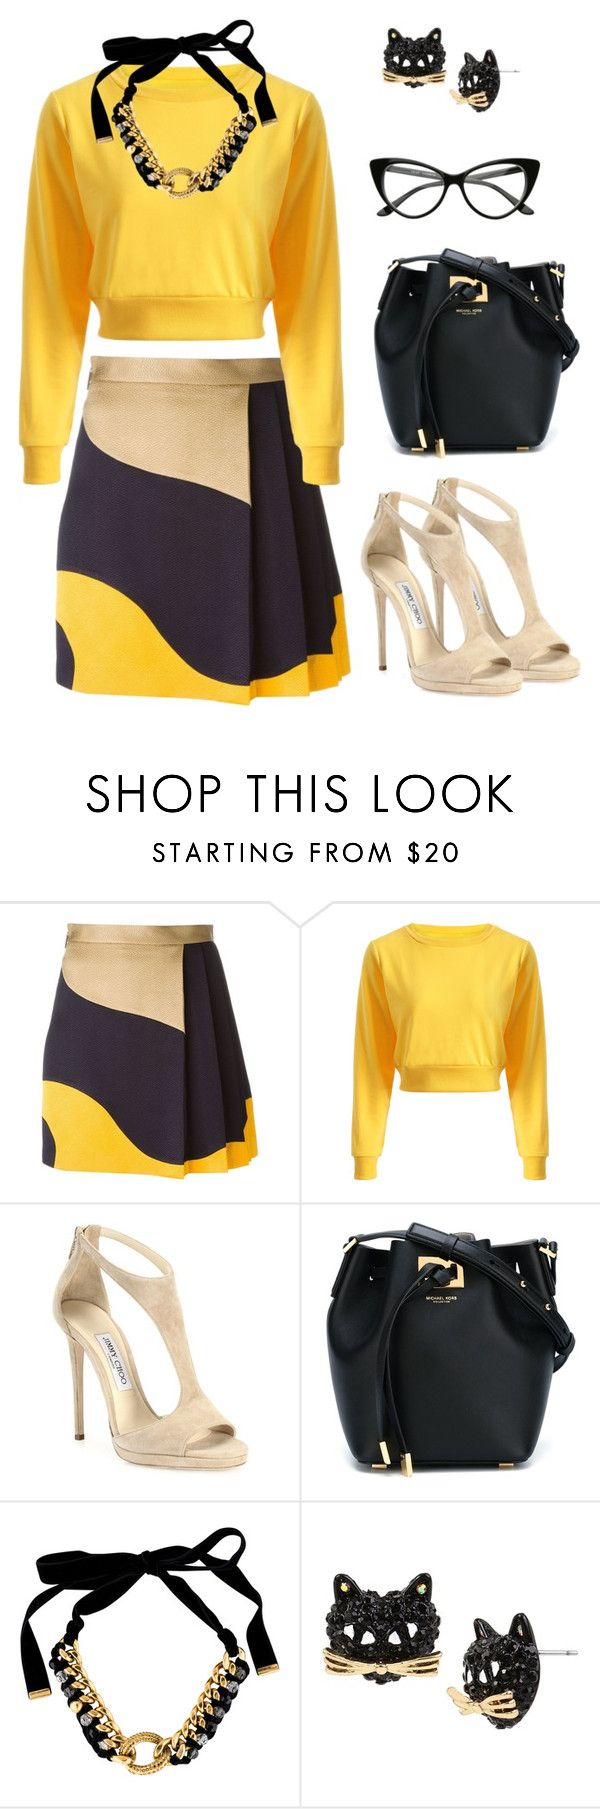 """""""Everlasting"""" by miss-shan-nicole ❤ liked on Polyvore featuring MSGM, Jimmy Choo, Michael Kors, Yves Saint Laurent and Betsey Johnson"""